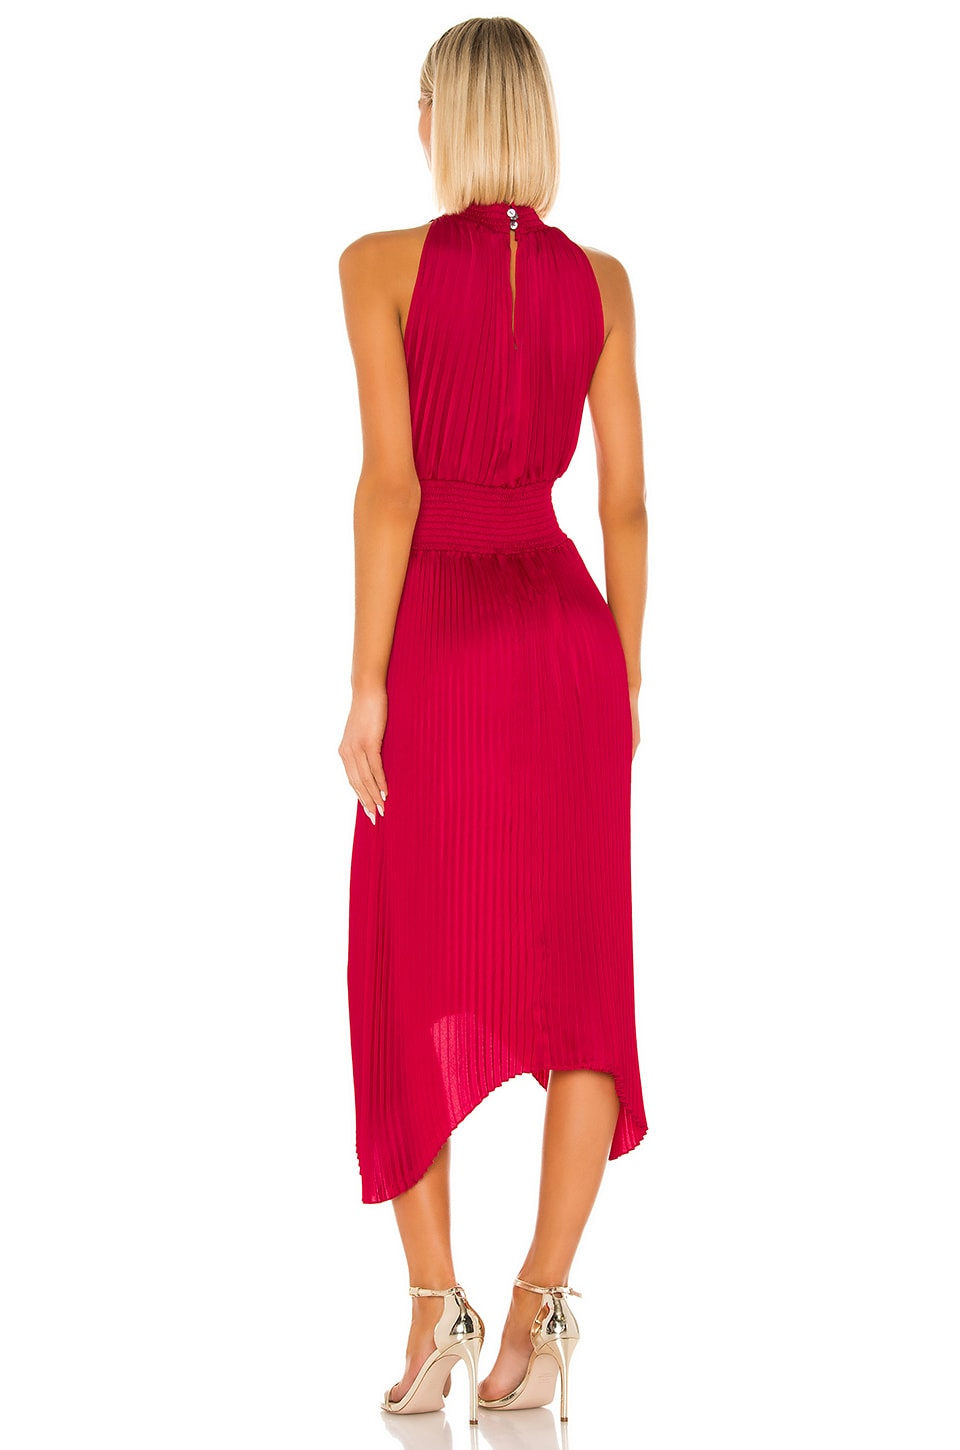 Halter Pleated Dress, view 3, click to view large image.